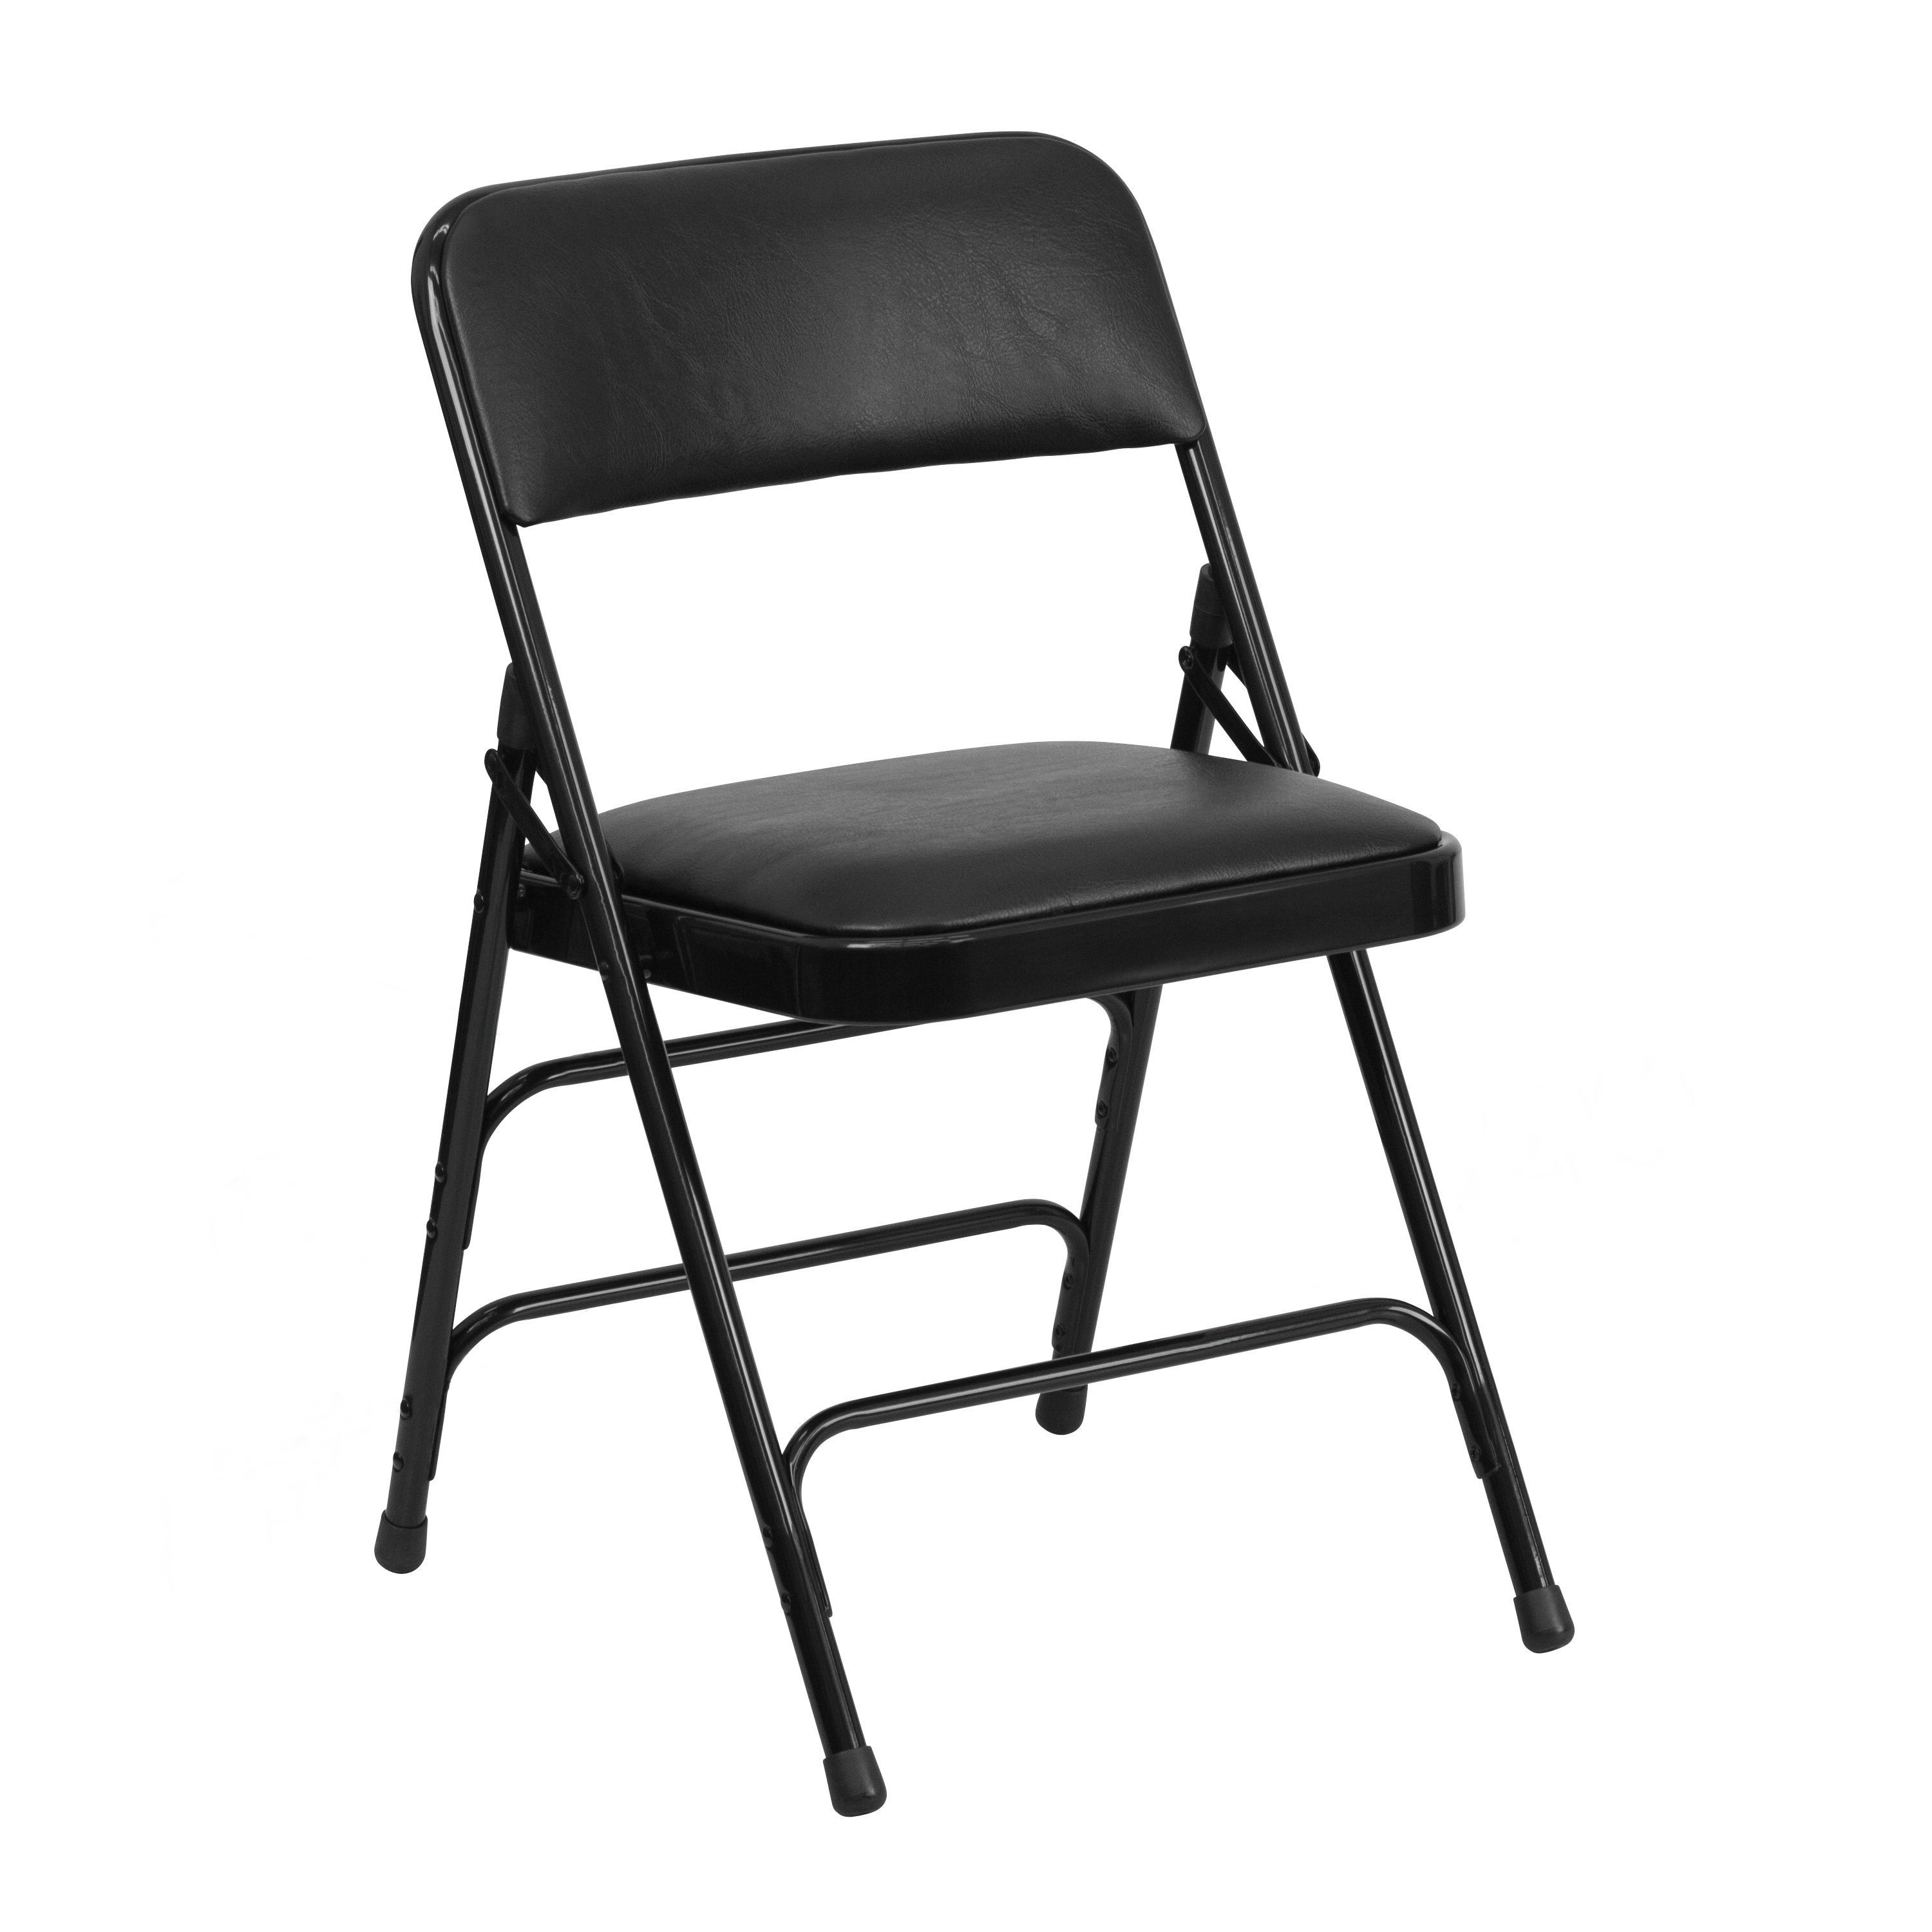 Aster Black Folding Chairs Aster Black Folding Chair 4